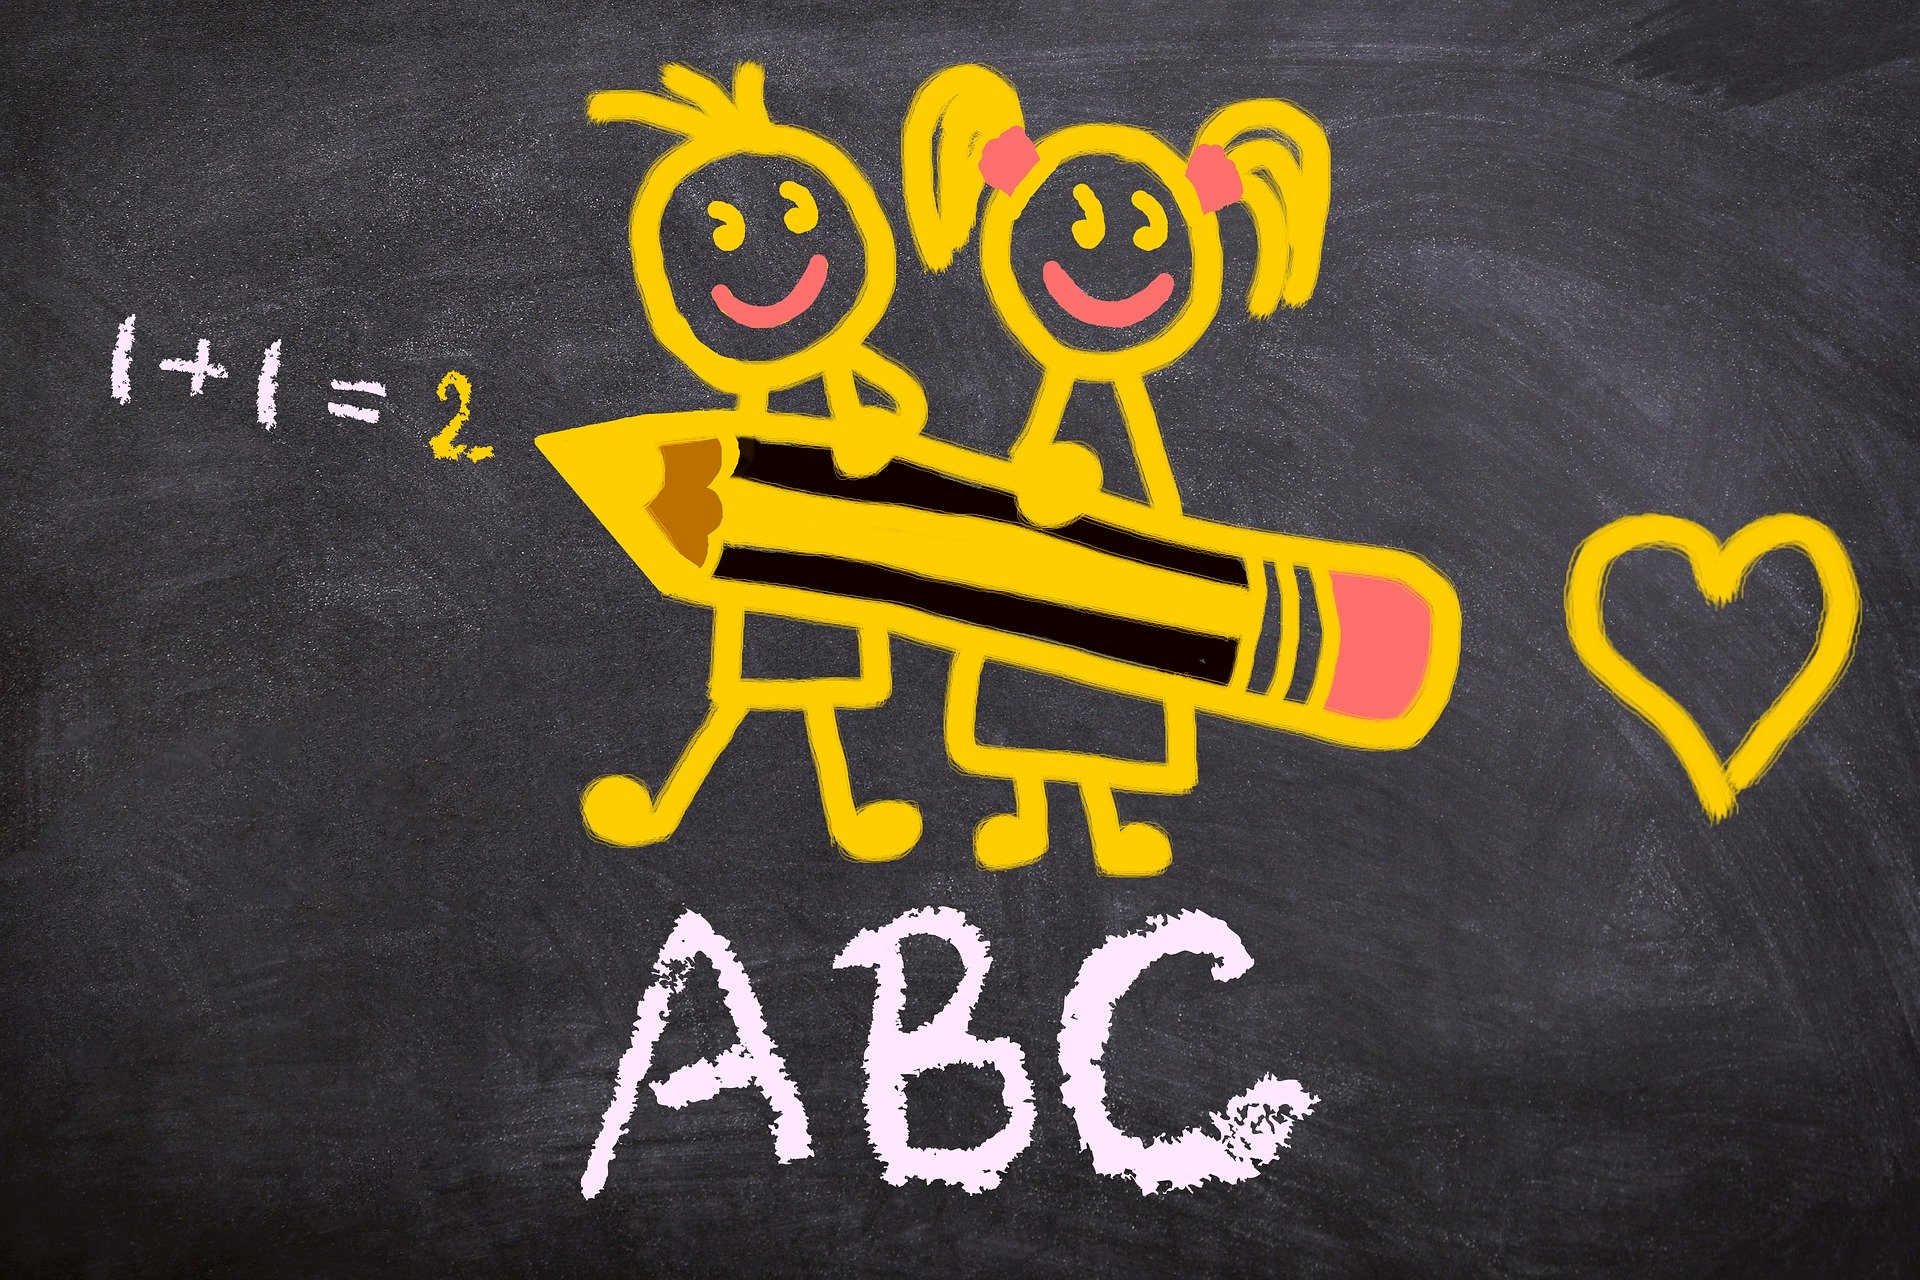 Image shows a blackboard with yellow chalk drawings of 2 children holding a pencil and writing the sum 1+1 = 2, ABC and a chalk heart.